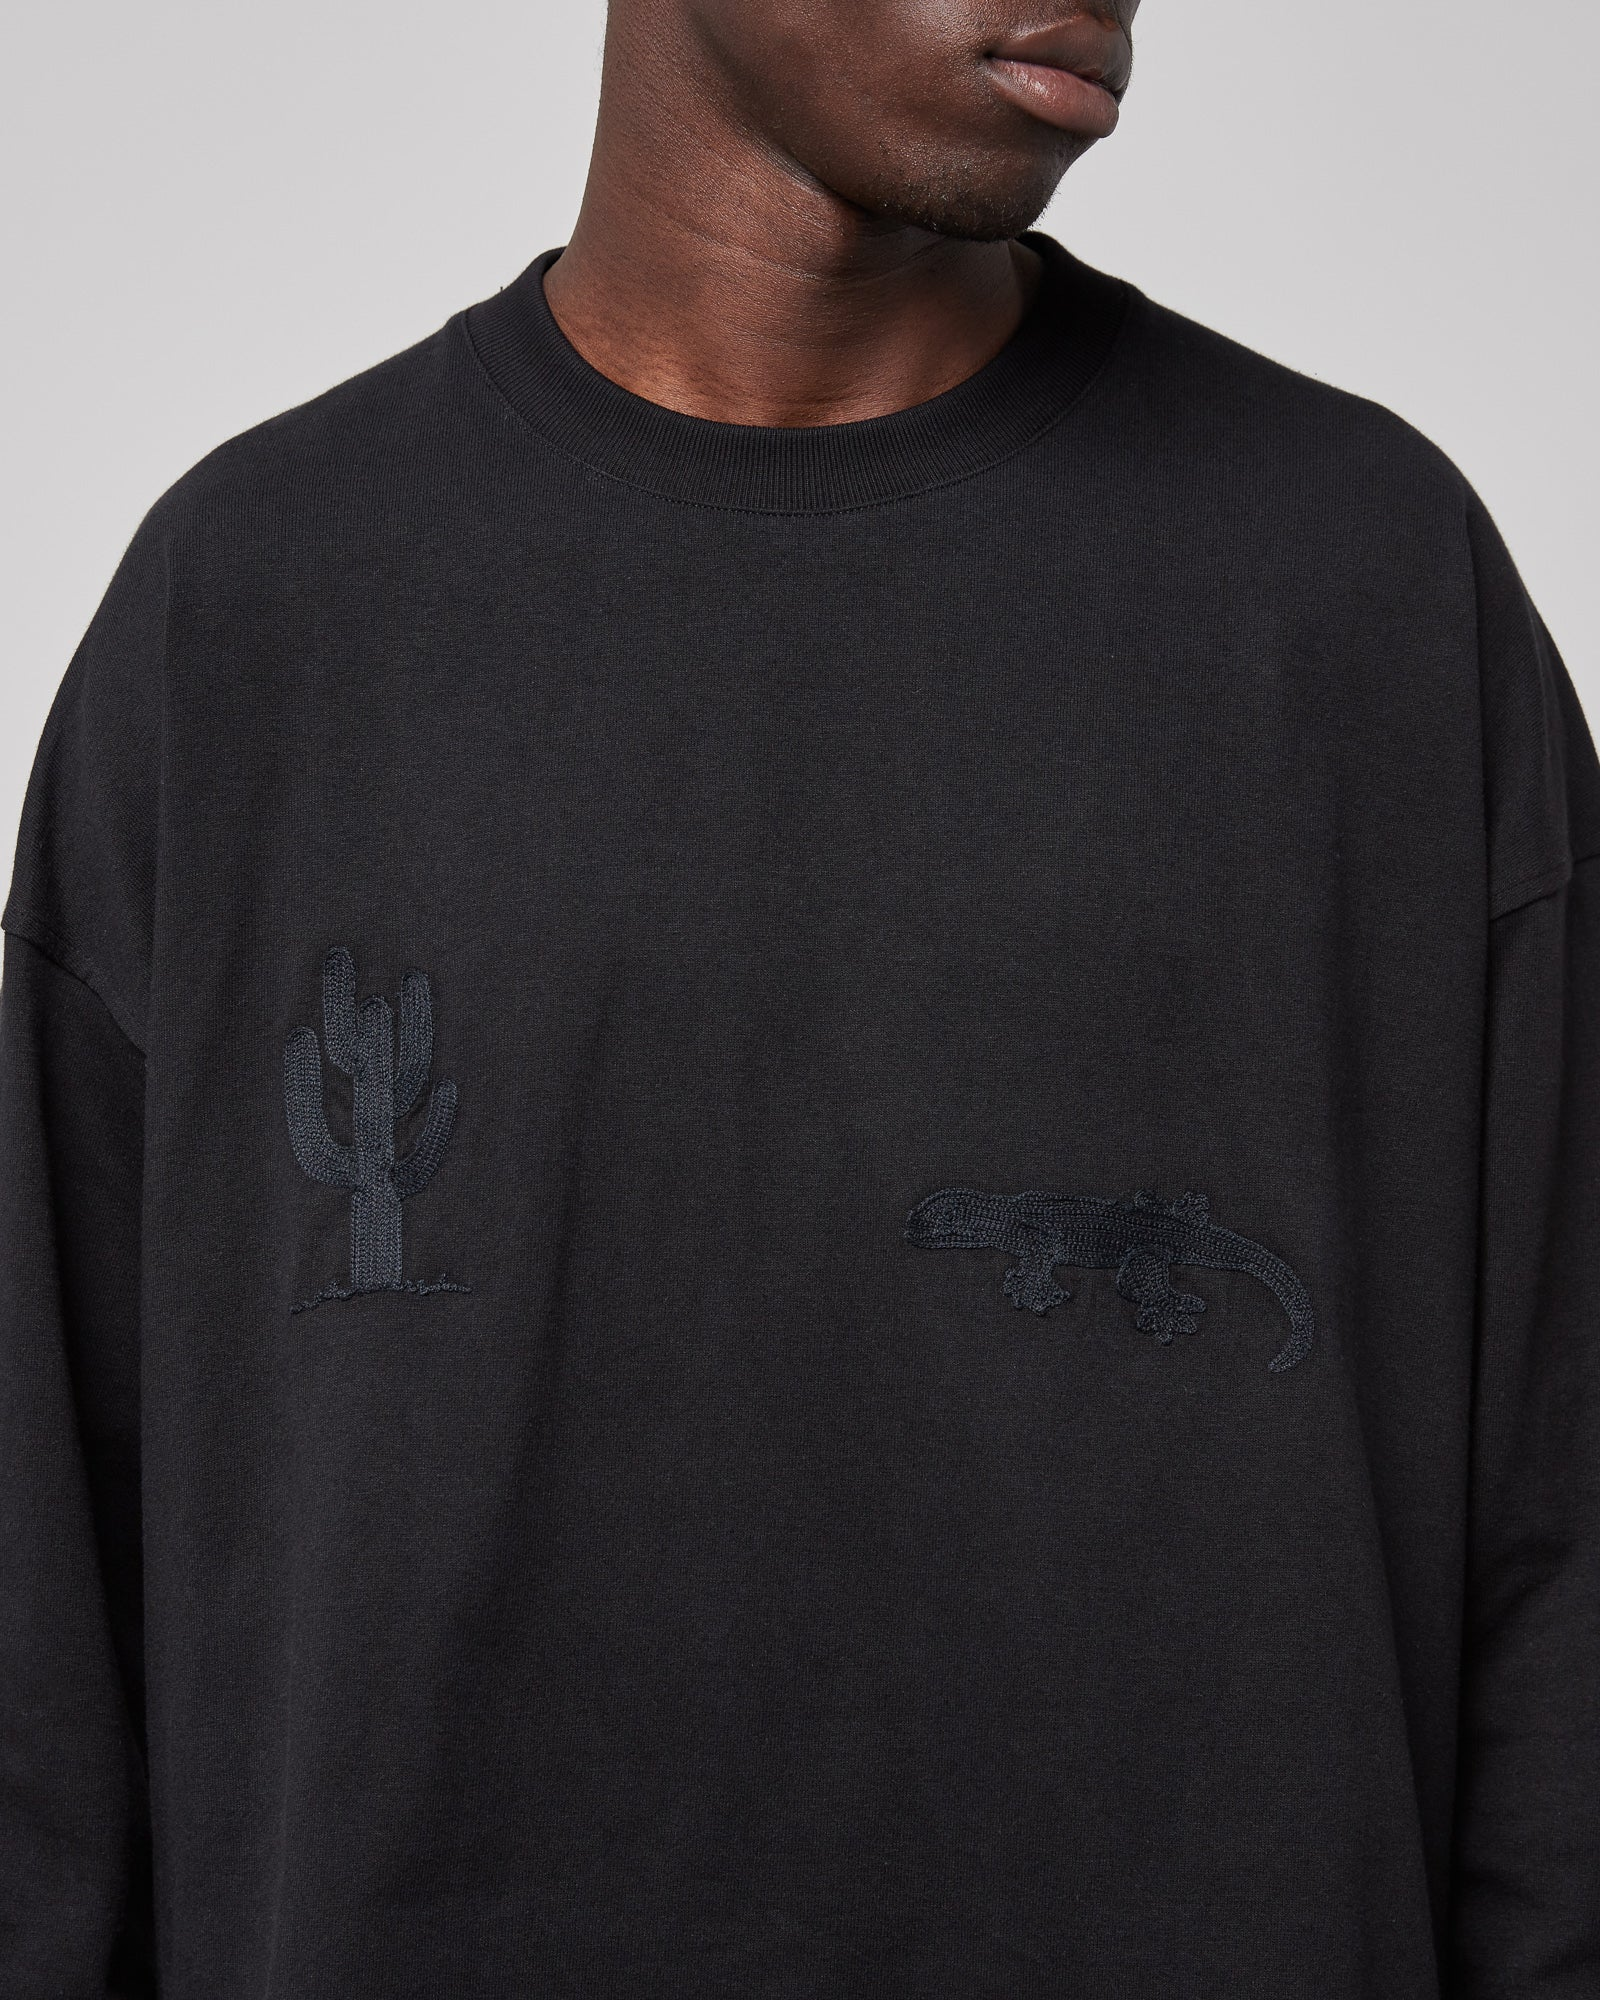 Cactus L/S T-Shirt in Black